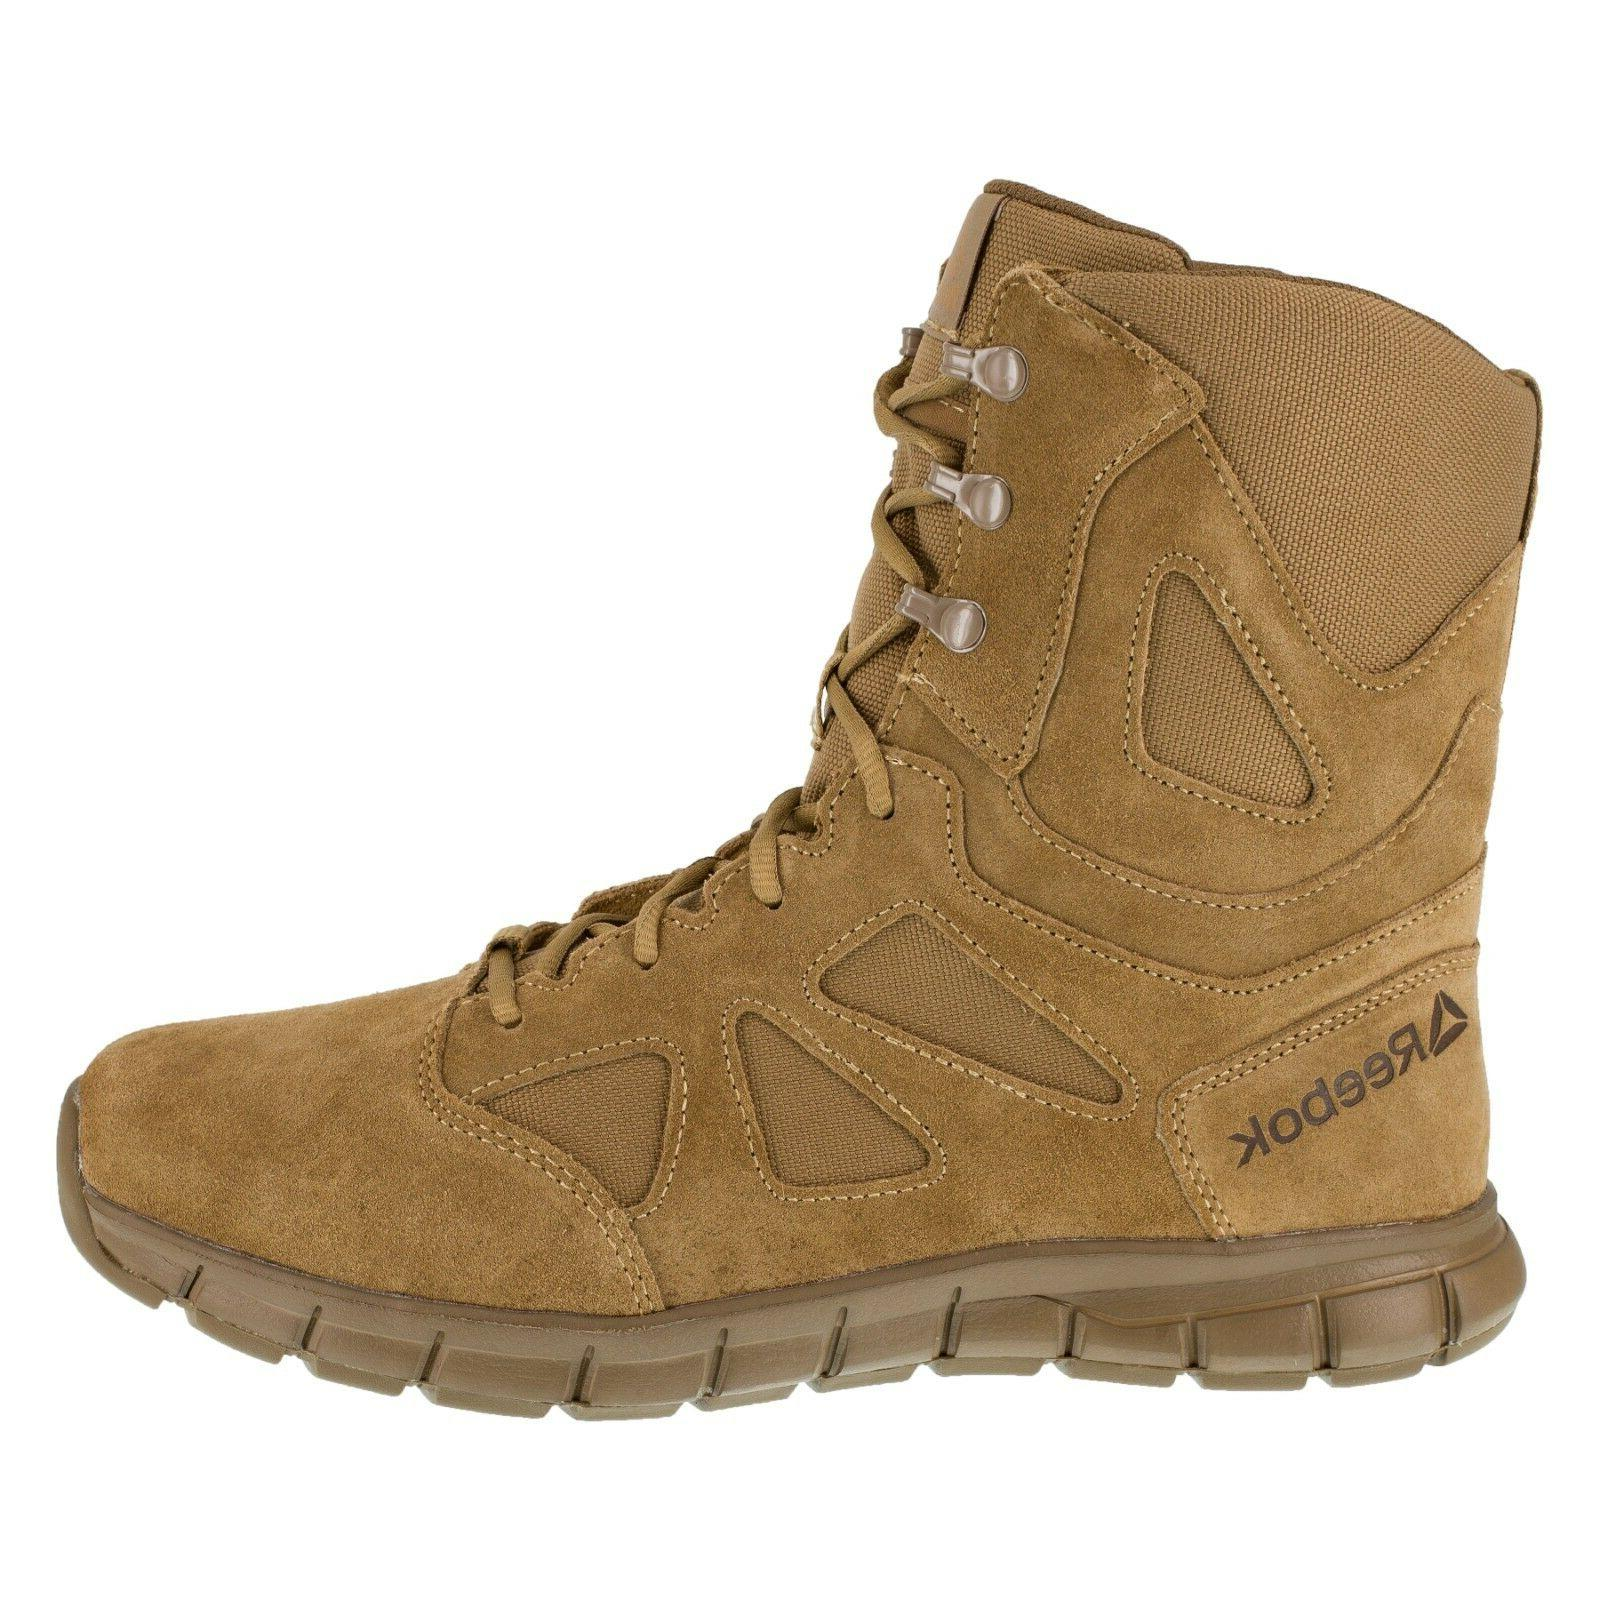 Reebok Women's Tactical Military Army Boots Sublite Cushion